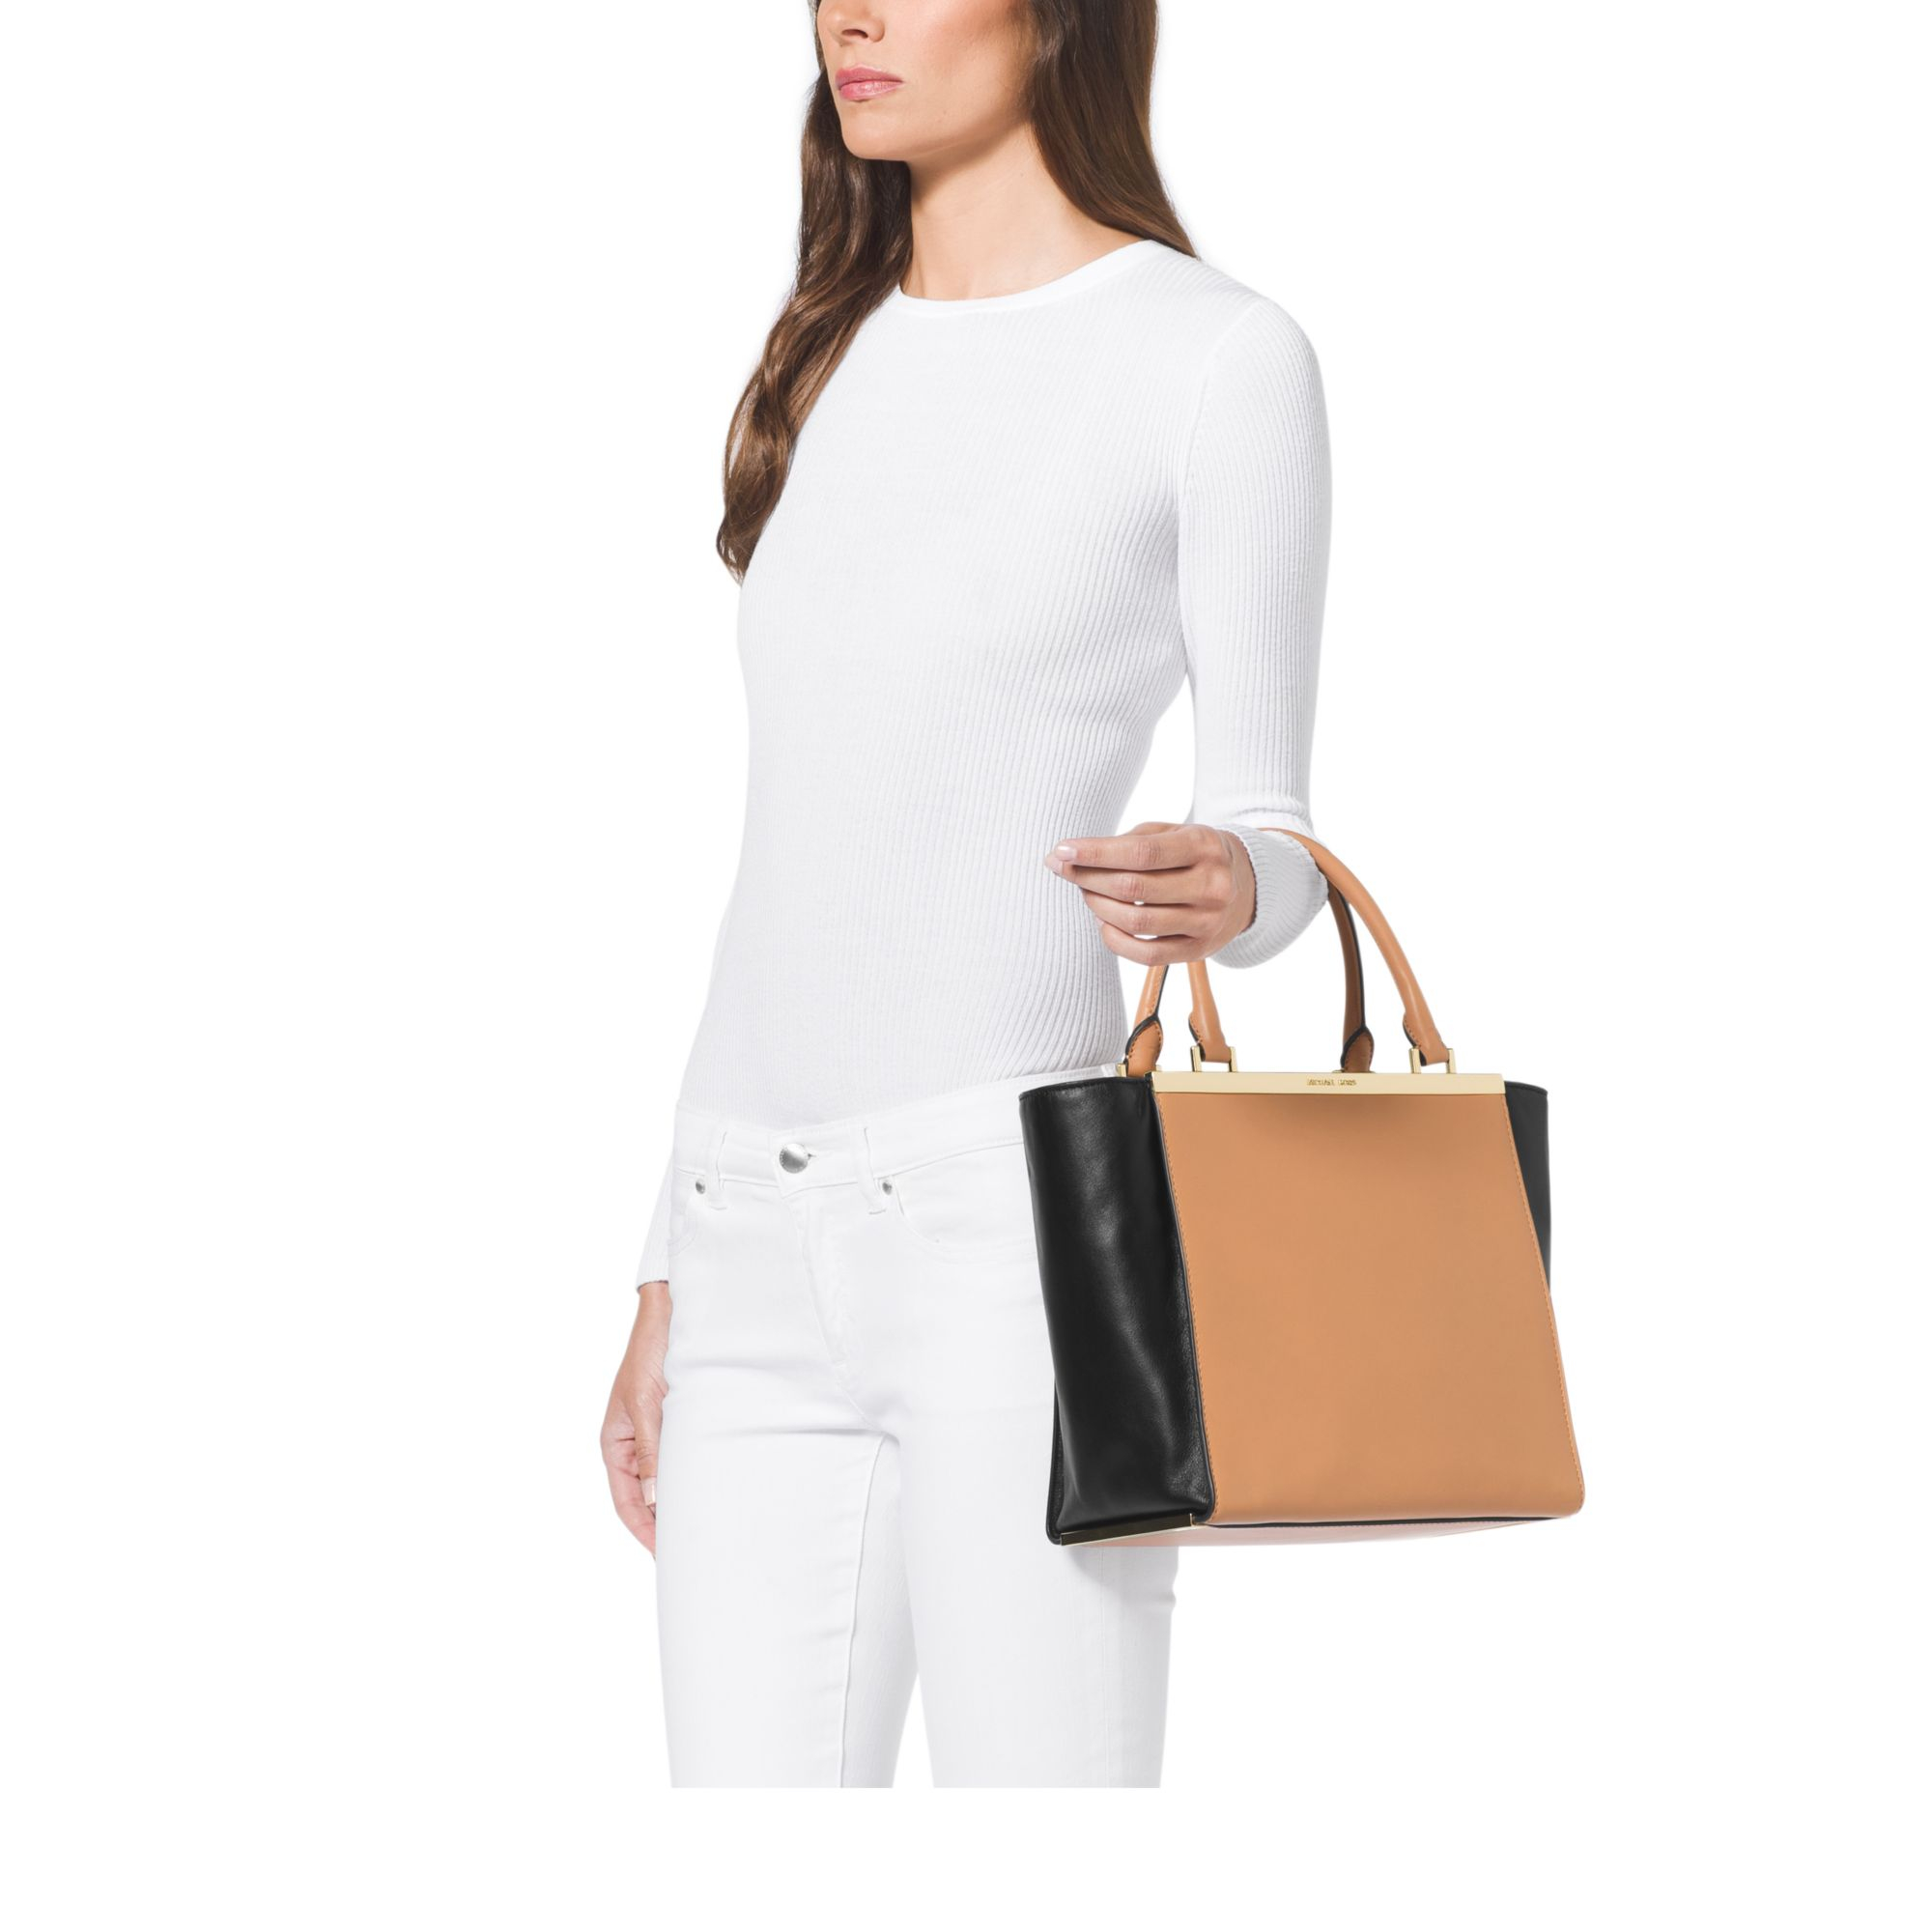 79f9bb700bbea2 Michael Kors Lana Medium Color-Block Leather Tote in Natural - Lyst